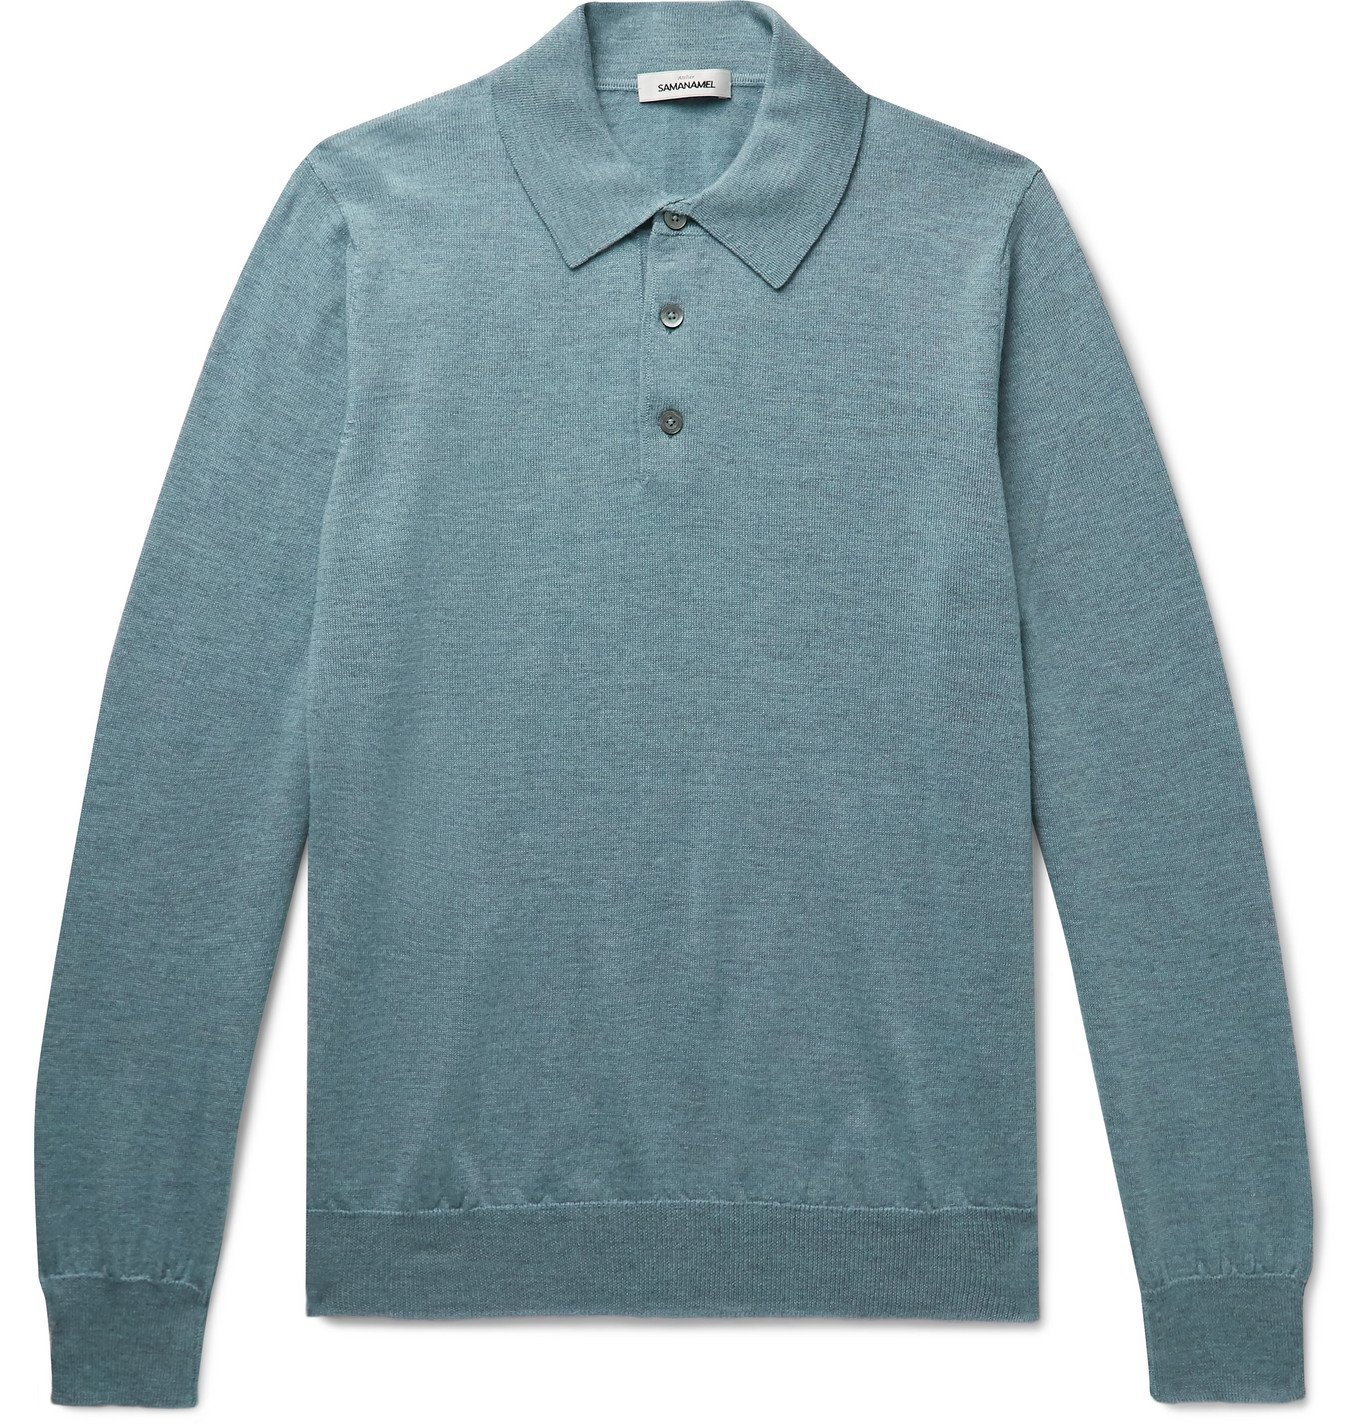 Saman Amel - Merino Wool Polo Shirt - Blue